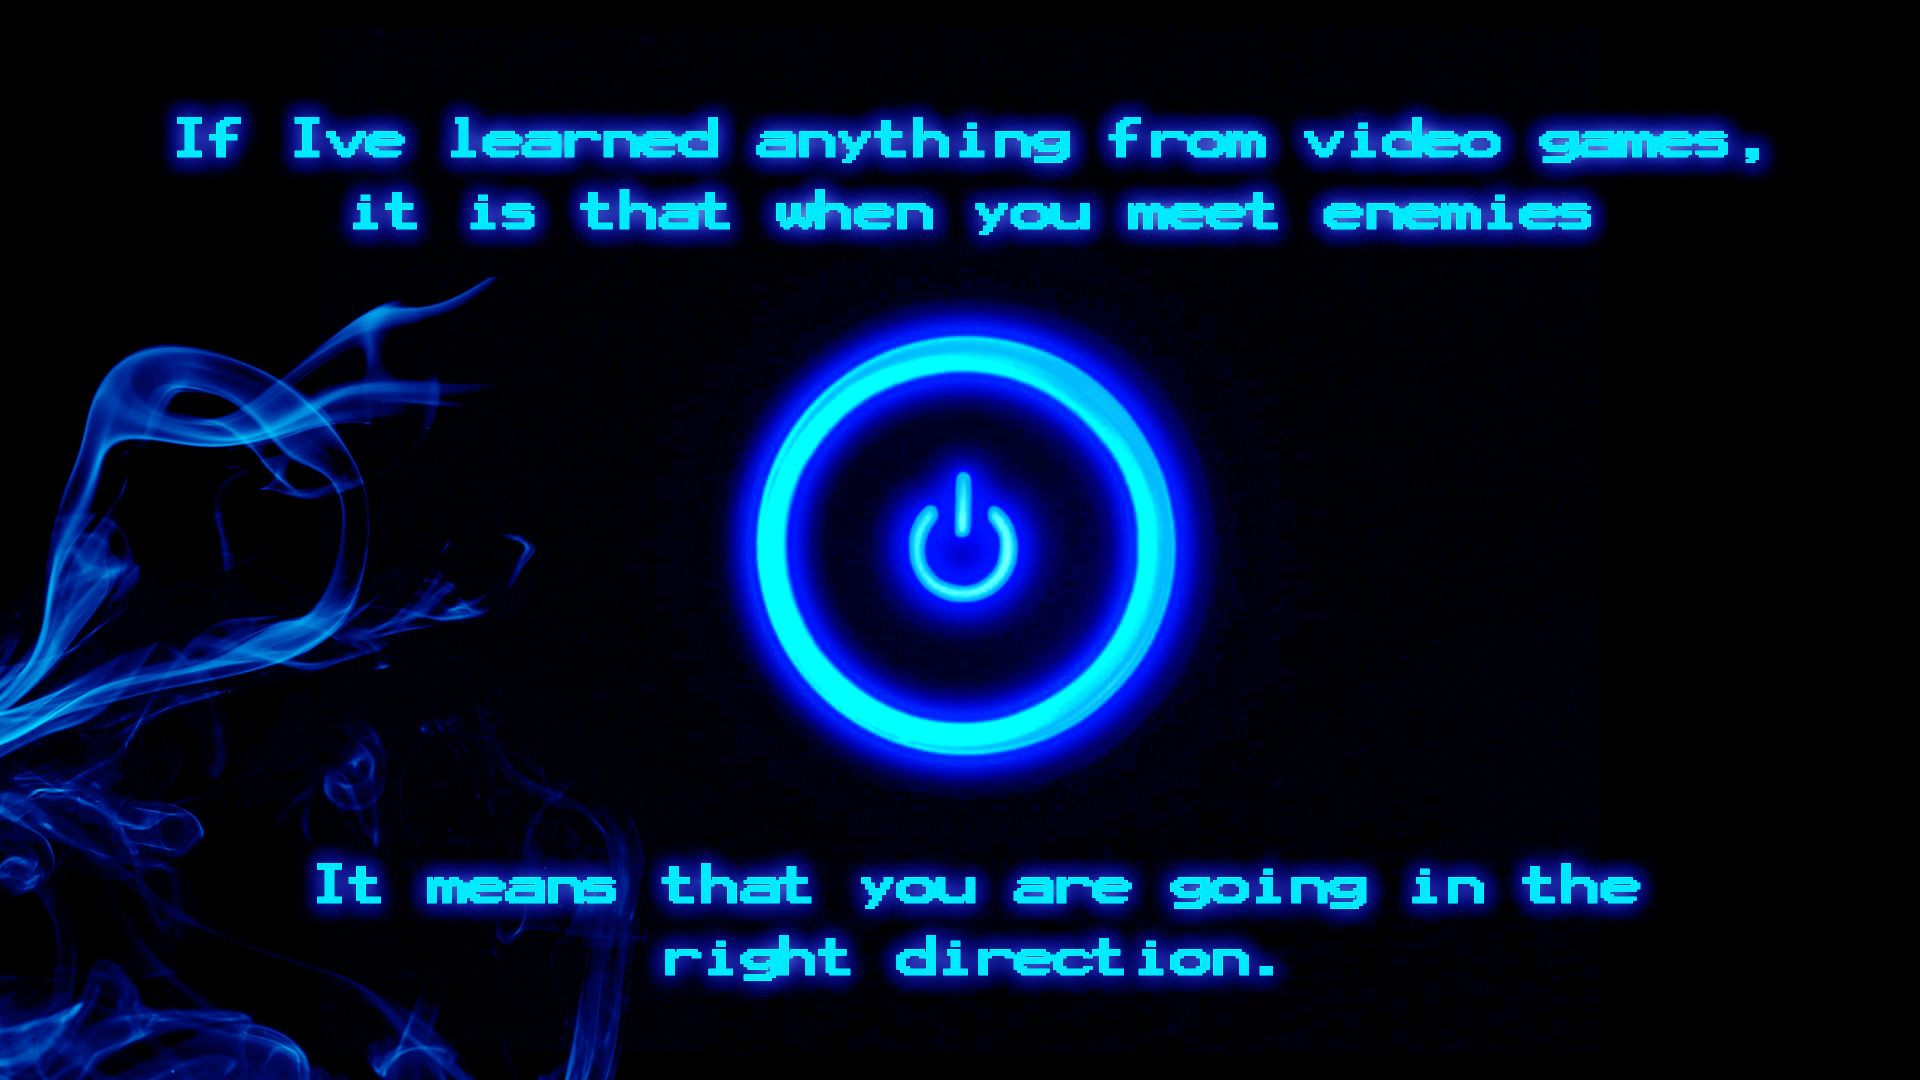 Video games life lesson 1920x1080 iimgurcom 1920x1080